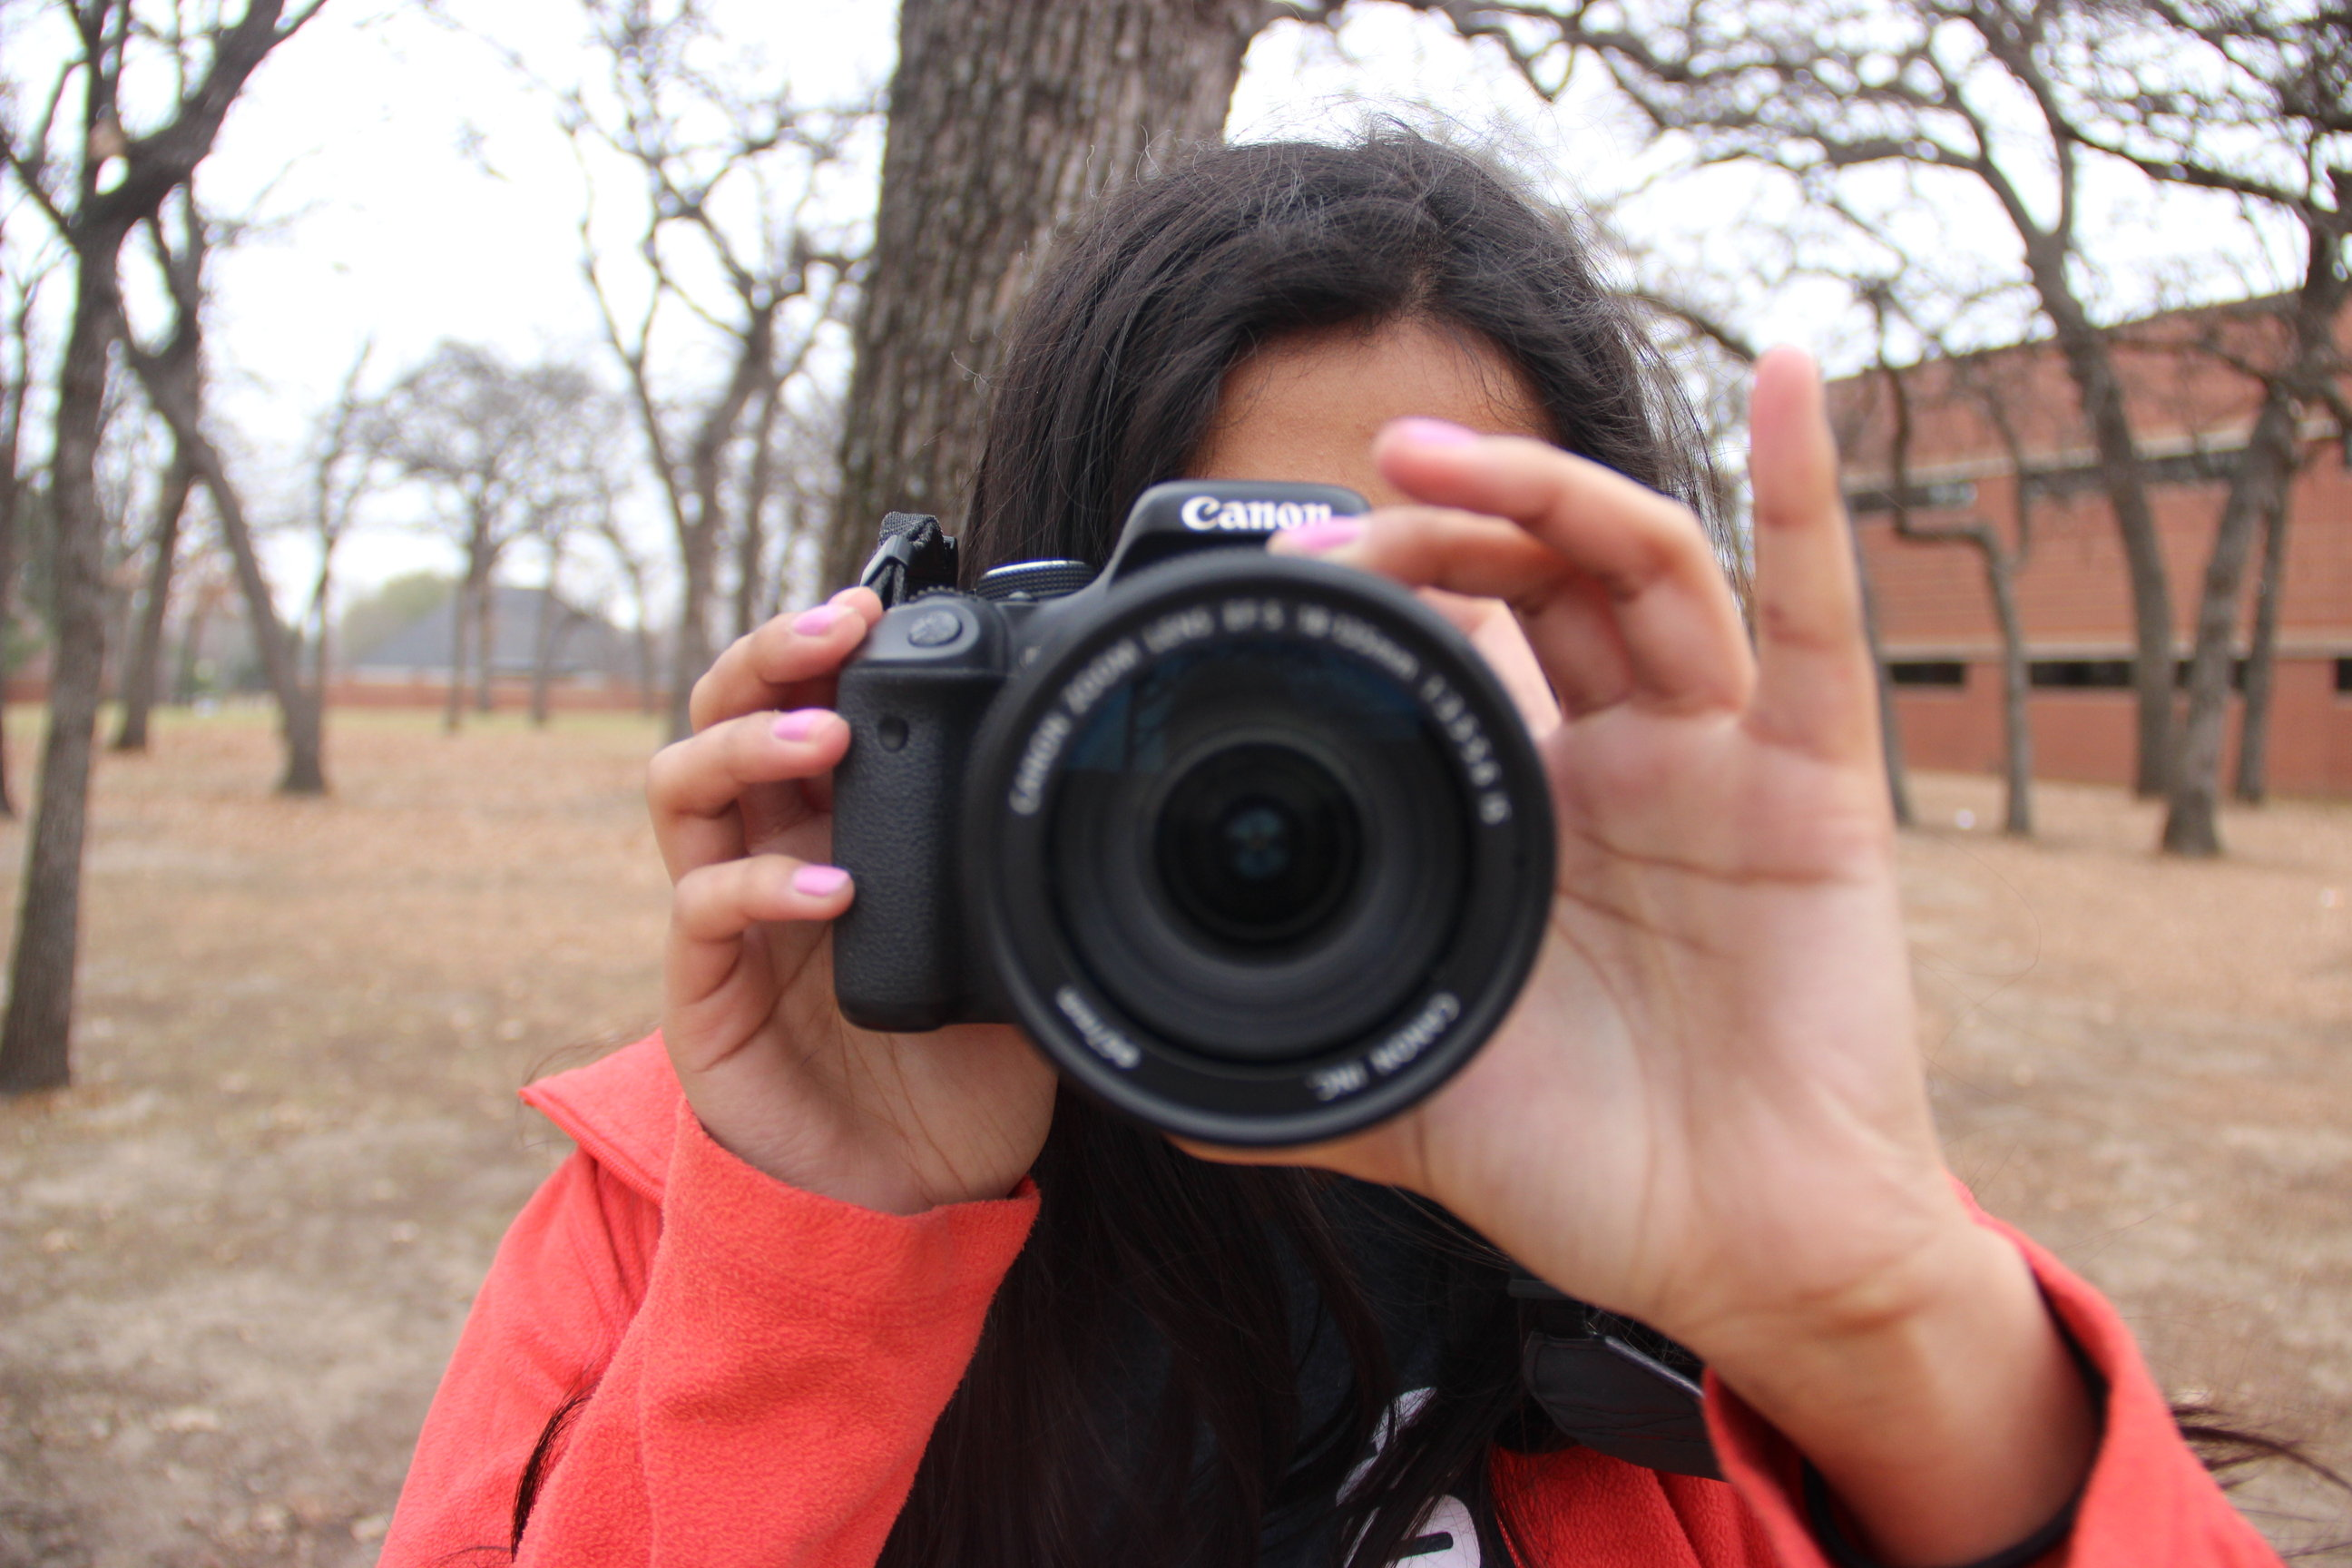 Coppell High School junior staff writer Fiona Koshy makes a goal to try two new hobbies, photography and piano, this year. She lets go of the fear that is holding her back so she can pursue the things she enjoys.